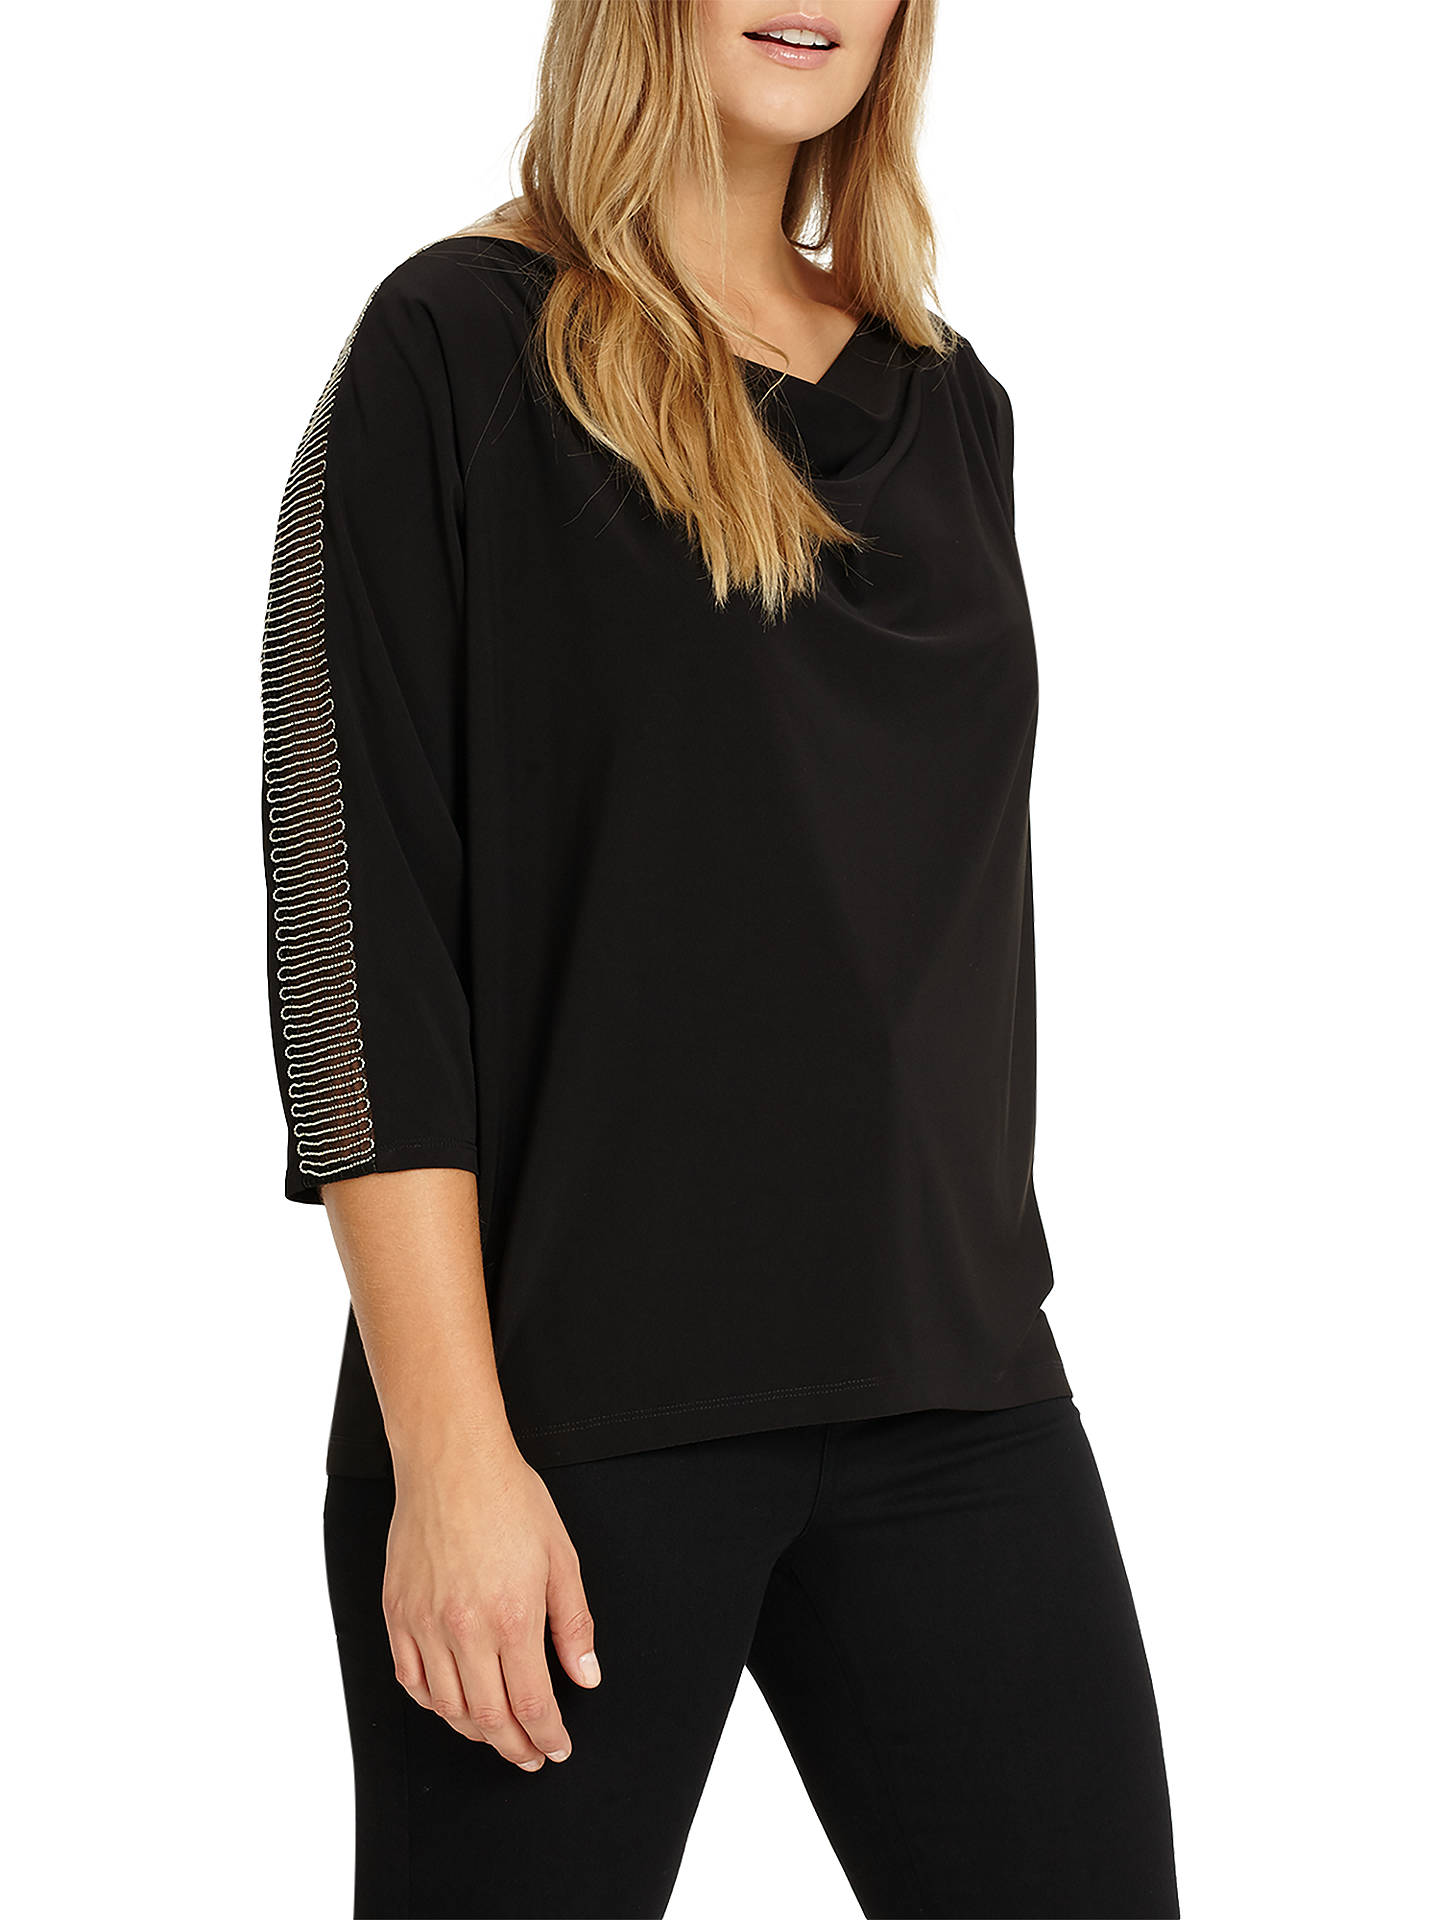 BuyStudio 8 Hannah Beaded Trim Top, Black, 14 Online at johnlewis.com